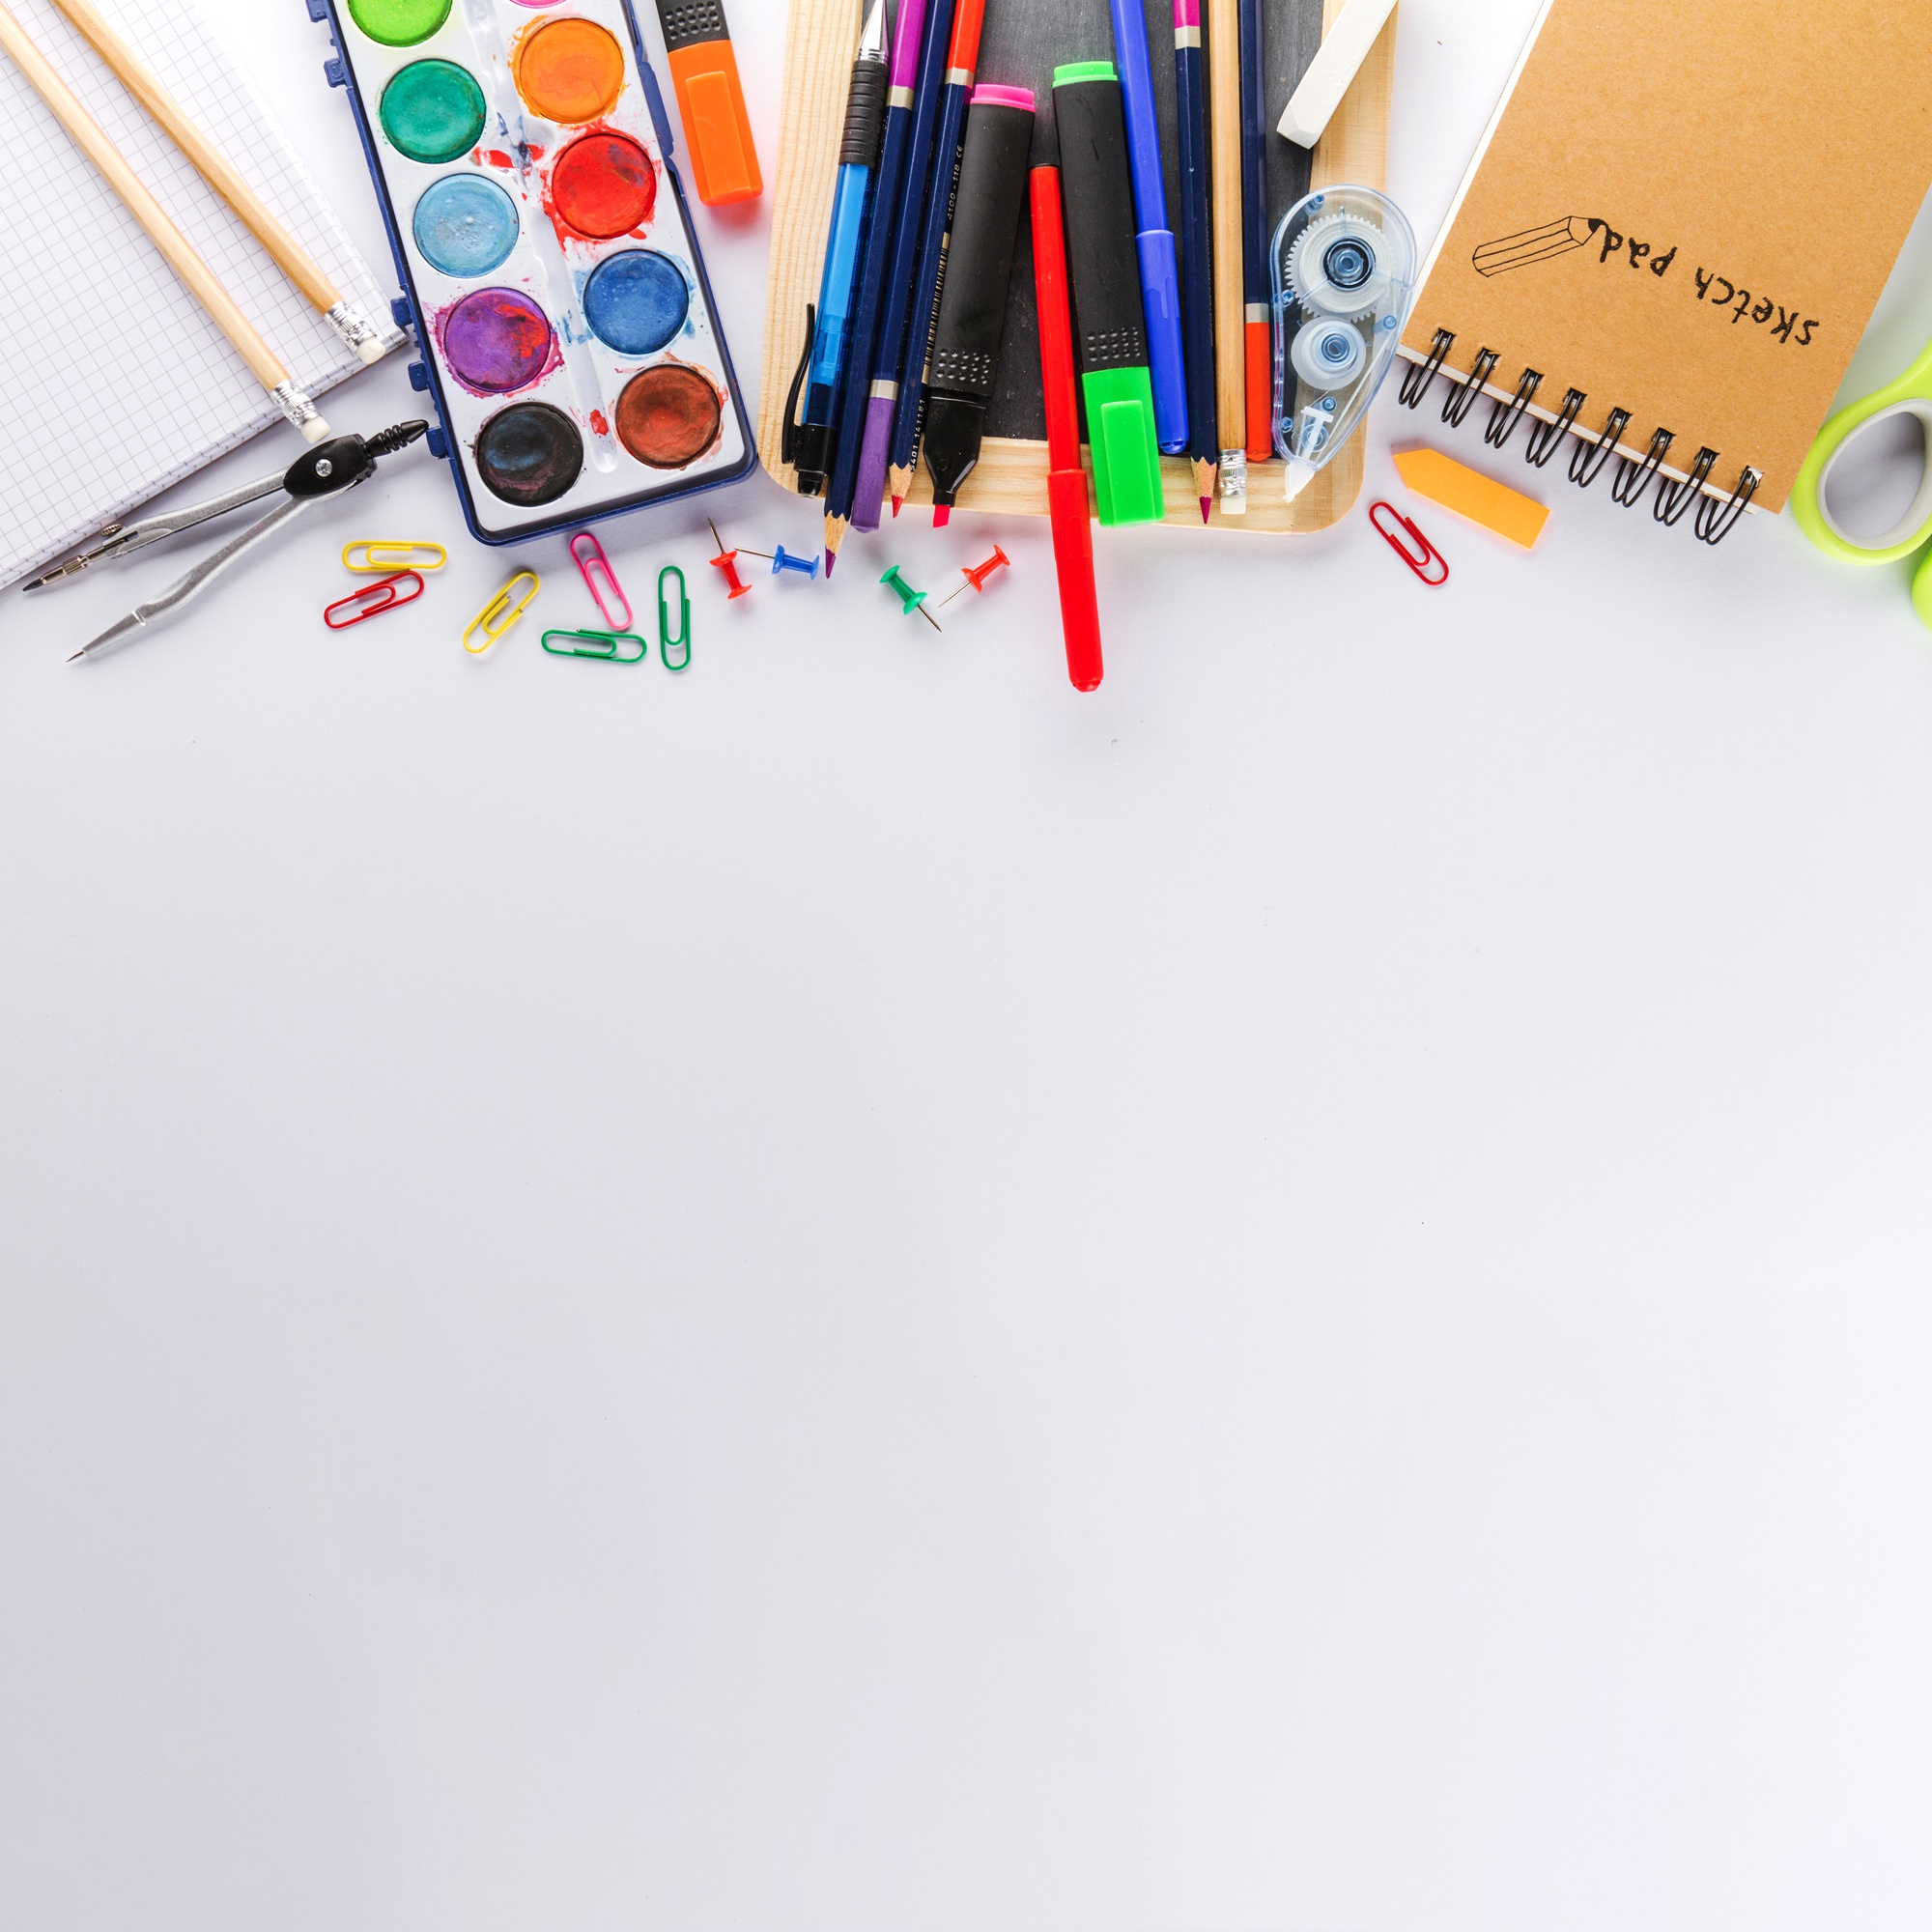 White surface and school supplies